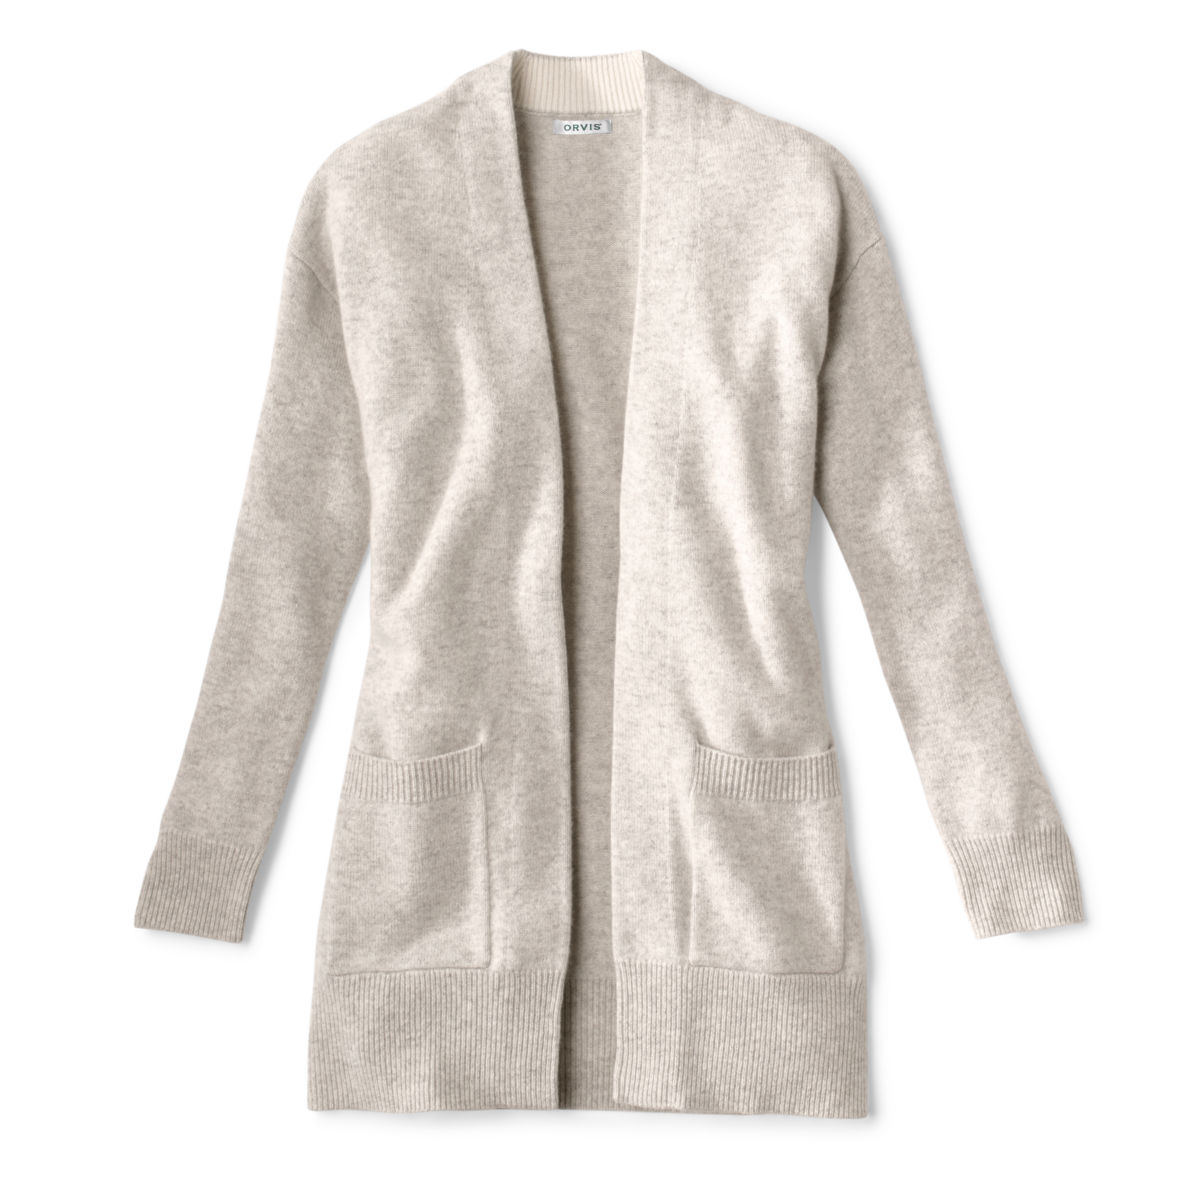 Cashmere Open Front Cardigan Sweater - LIGHT GRAYimage number 0